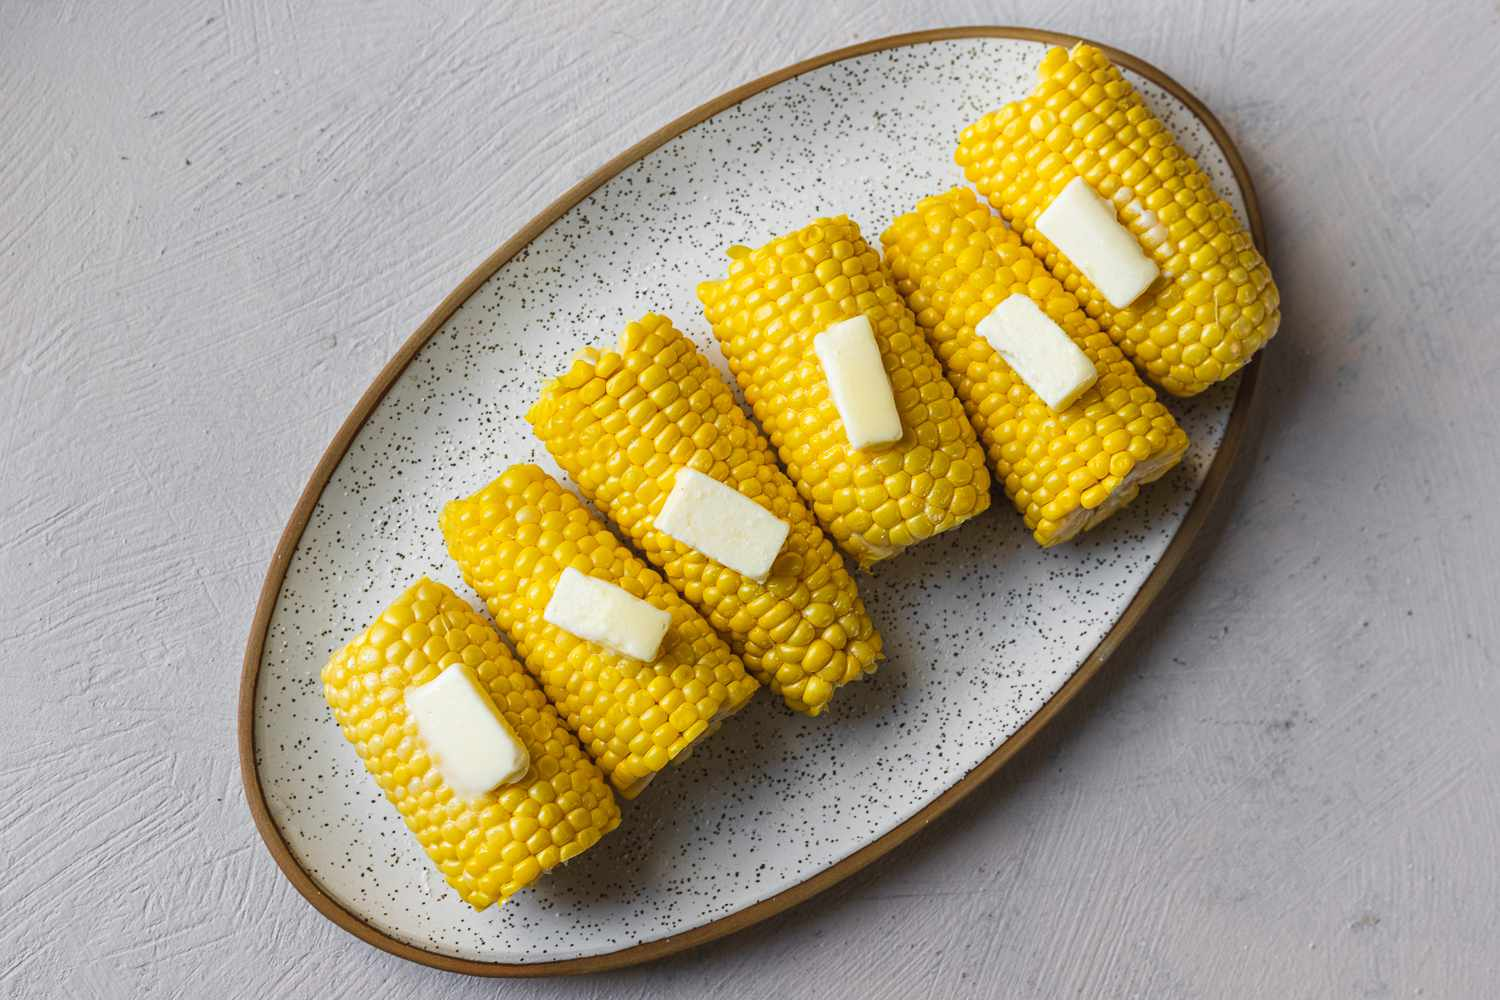 Fresh steamed corn on the cob with pats of butter on a serving plate